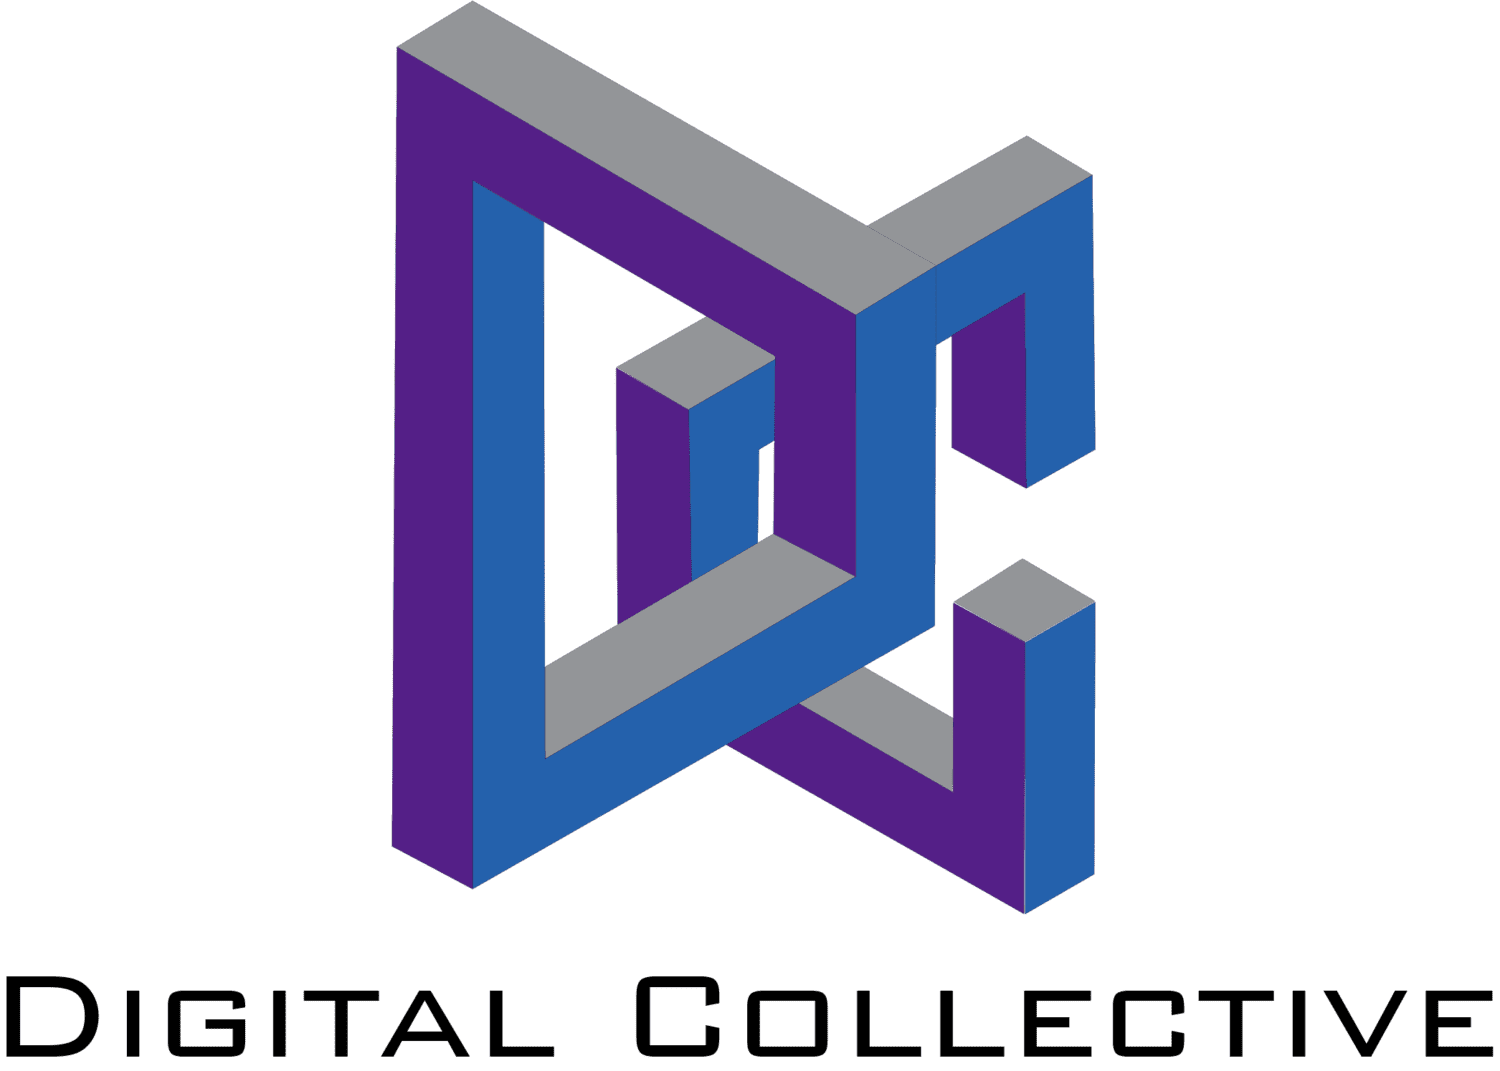 DC LOGO-SQUARE copy-no tagline